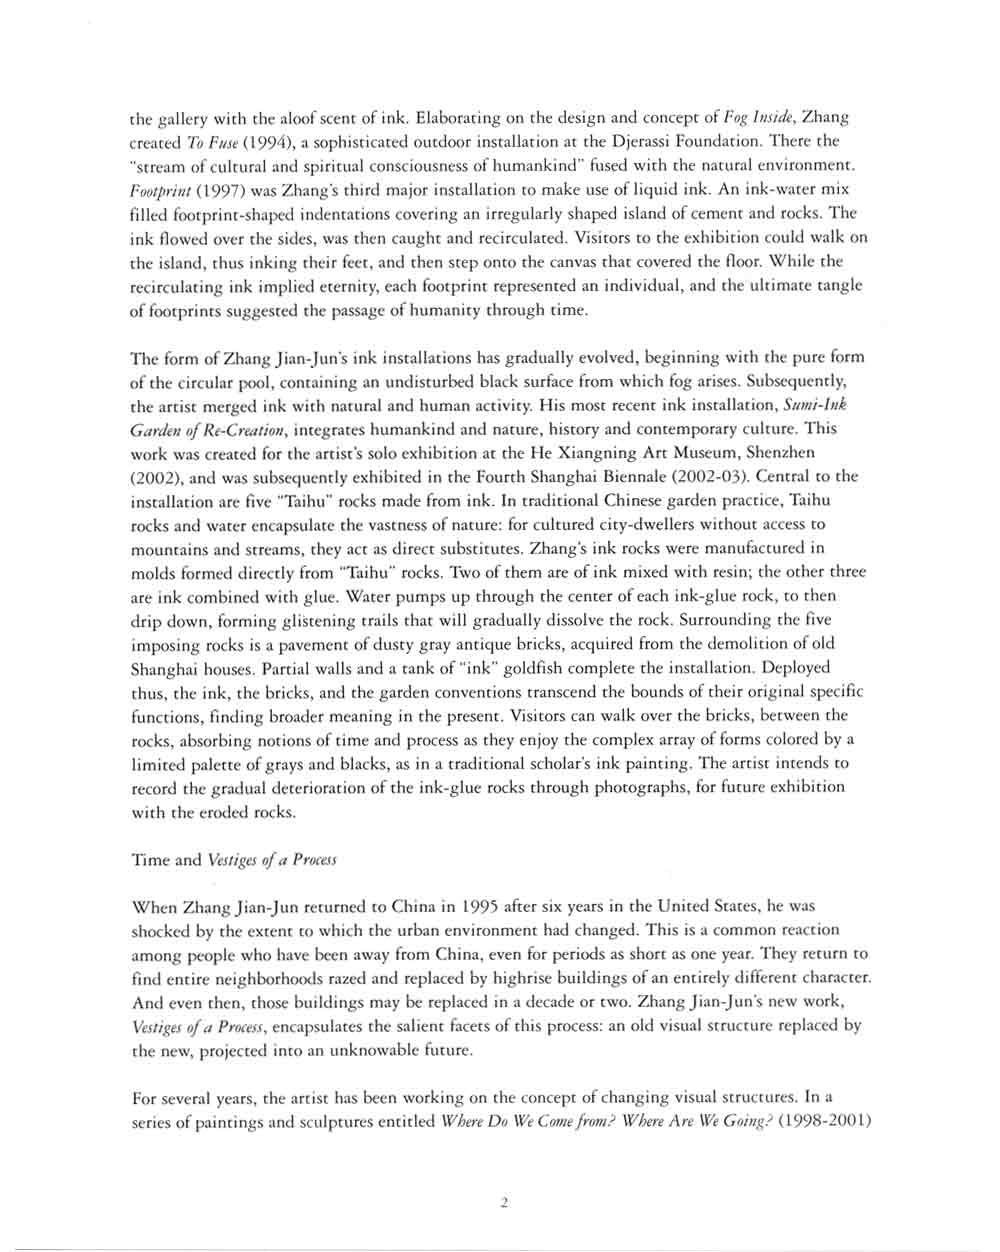 Visual Experience of Time and Cultural Form Installations by Zhang Jian-Jun, essay, pg 2